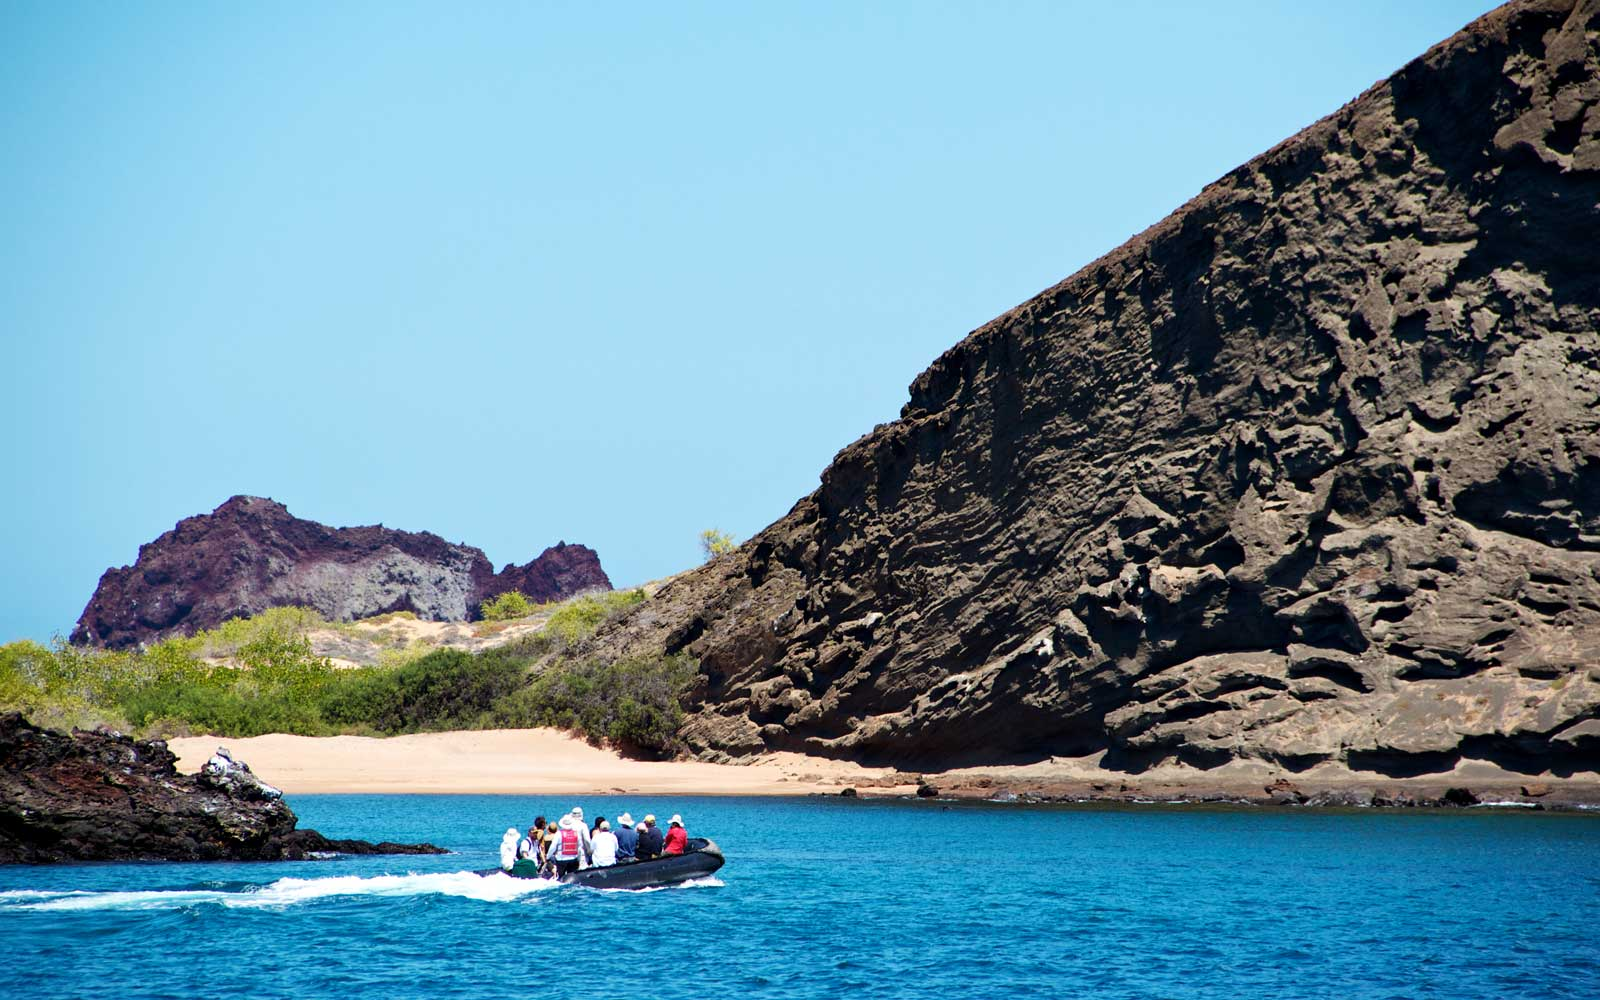 Book a 5-day Galapagos Cruise for $2,523 Per Person